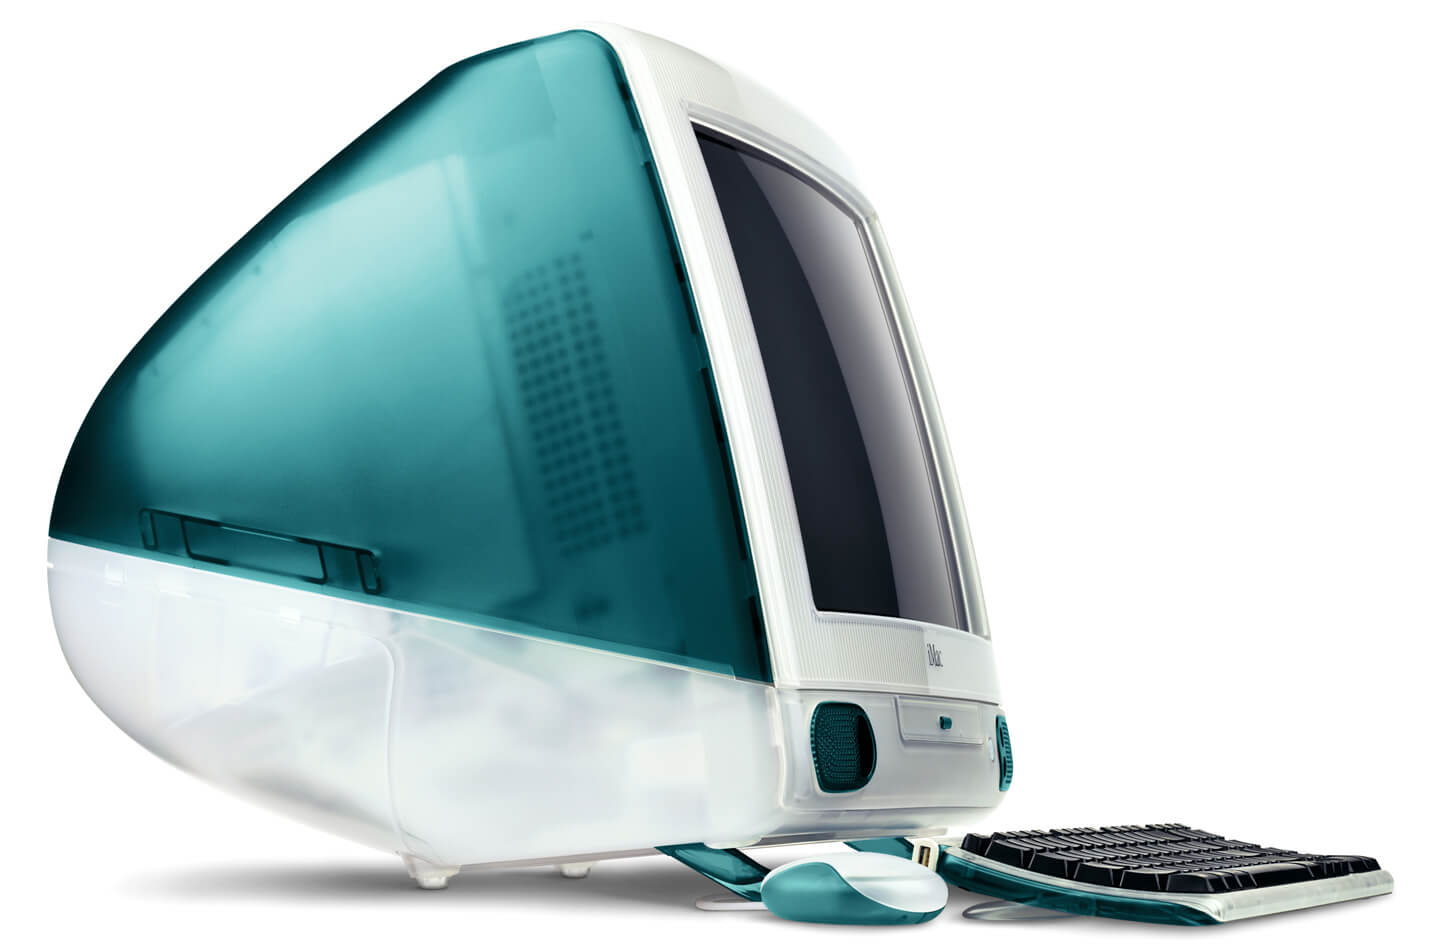 Apple iMac personal computer